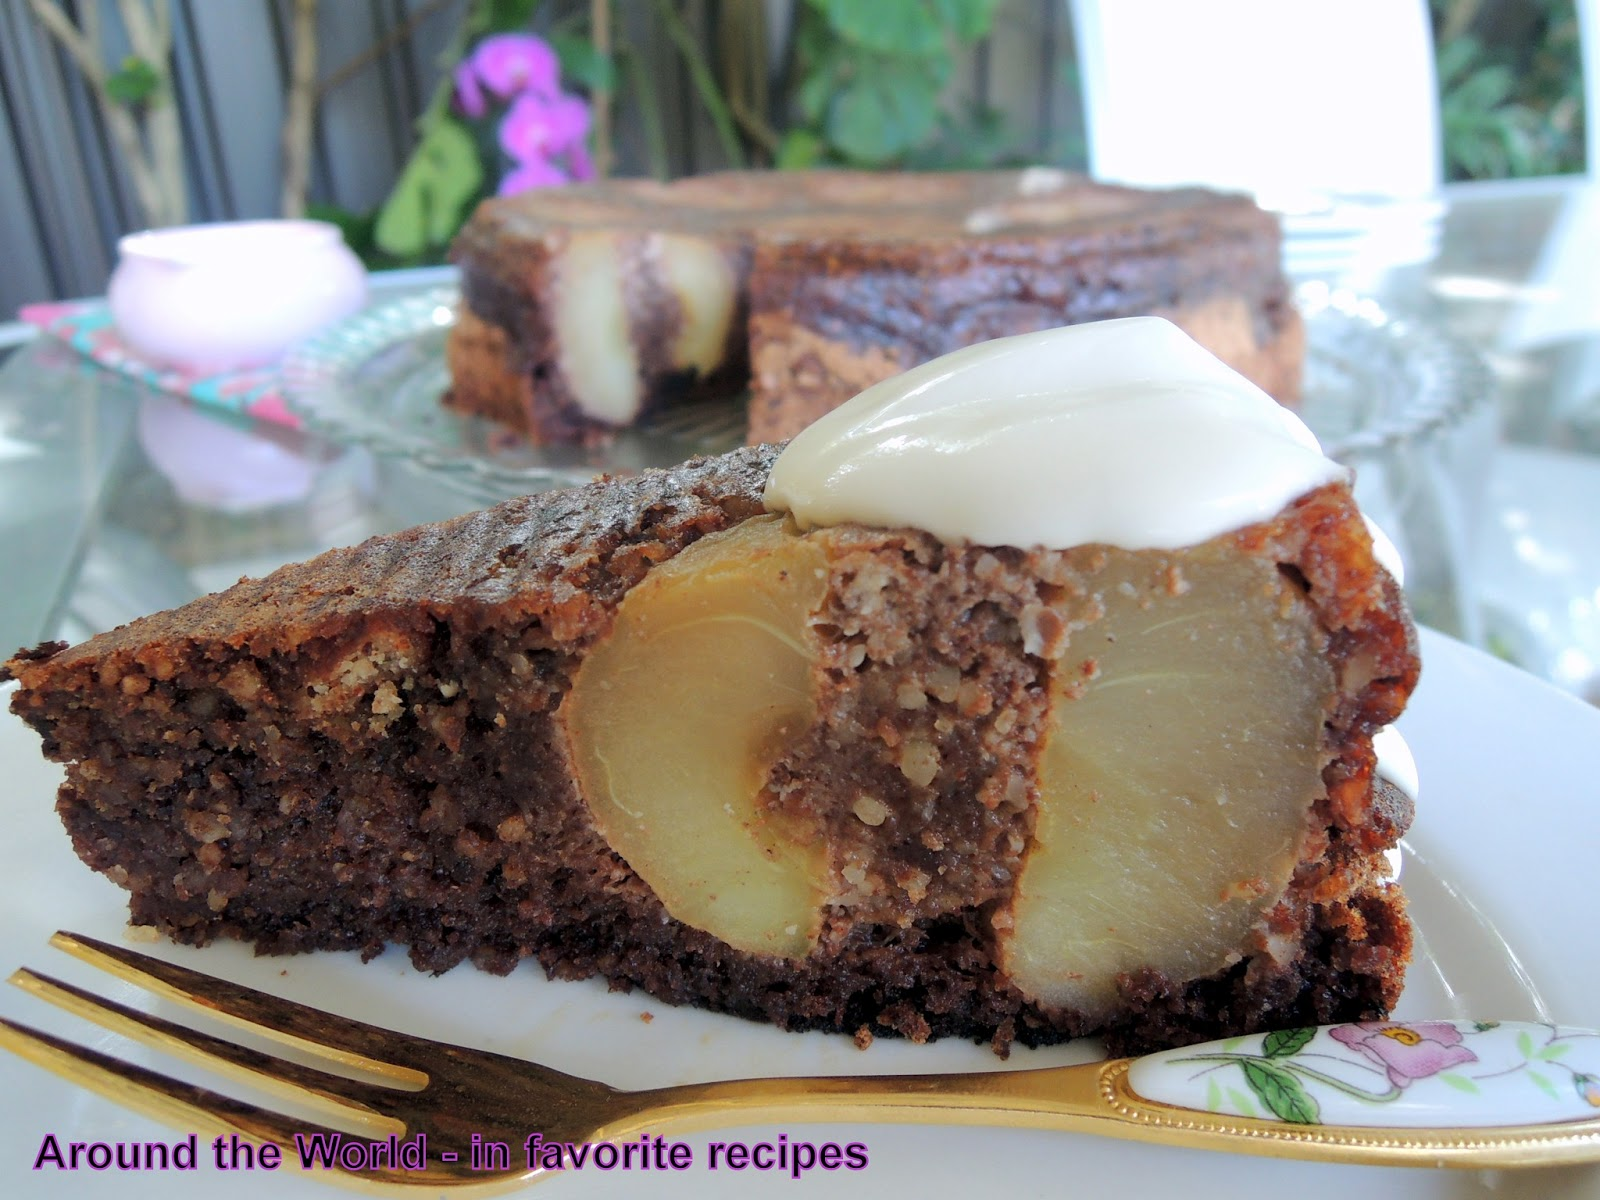 ... World - in favorite recipes: Tea cakes, Pies, Tarts and Sweet breads